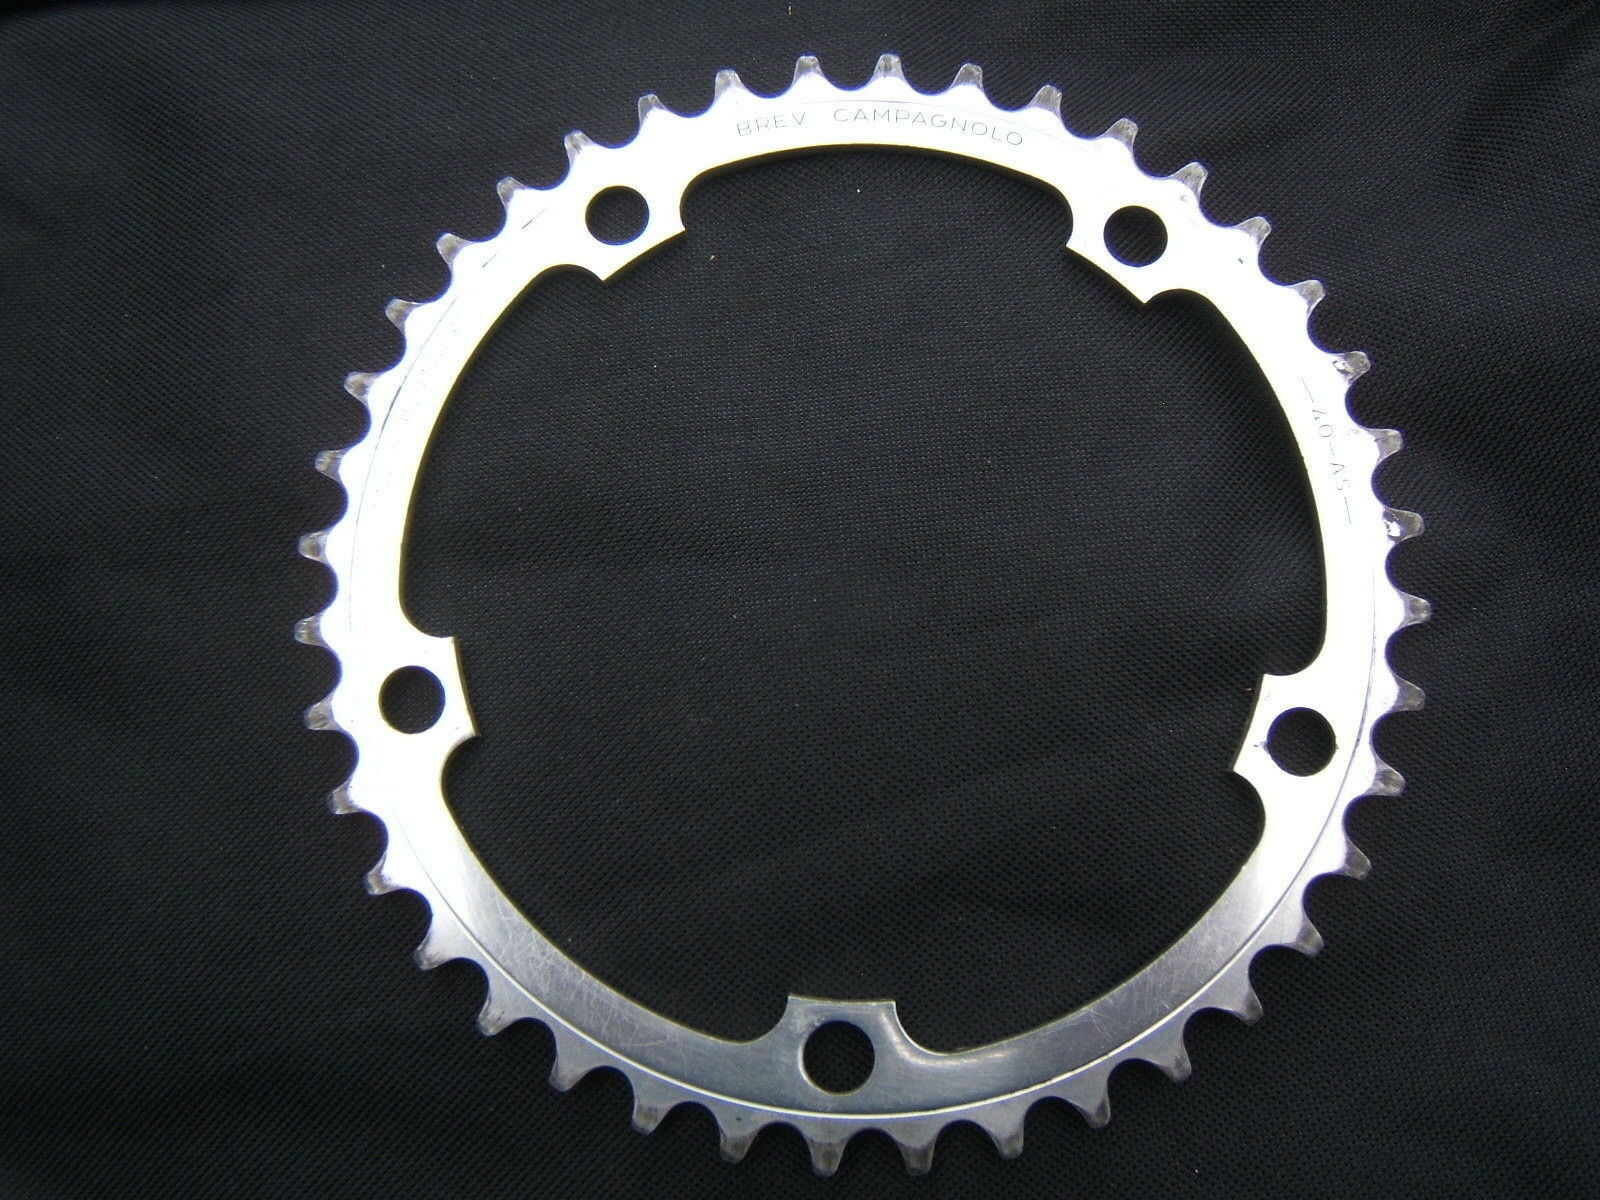 CAMPAGNOLO AS ALLOY CHAINRING 40 TEETH 135 BCD    ITALY 90's USED